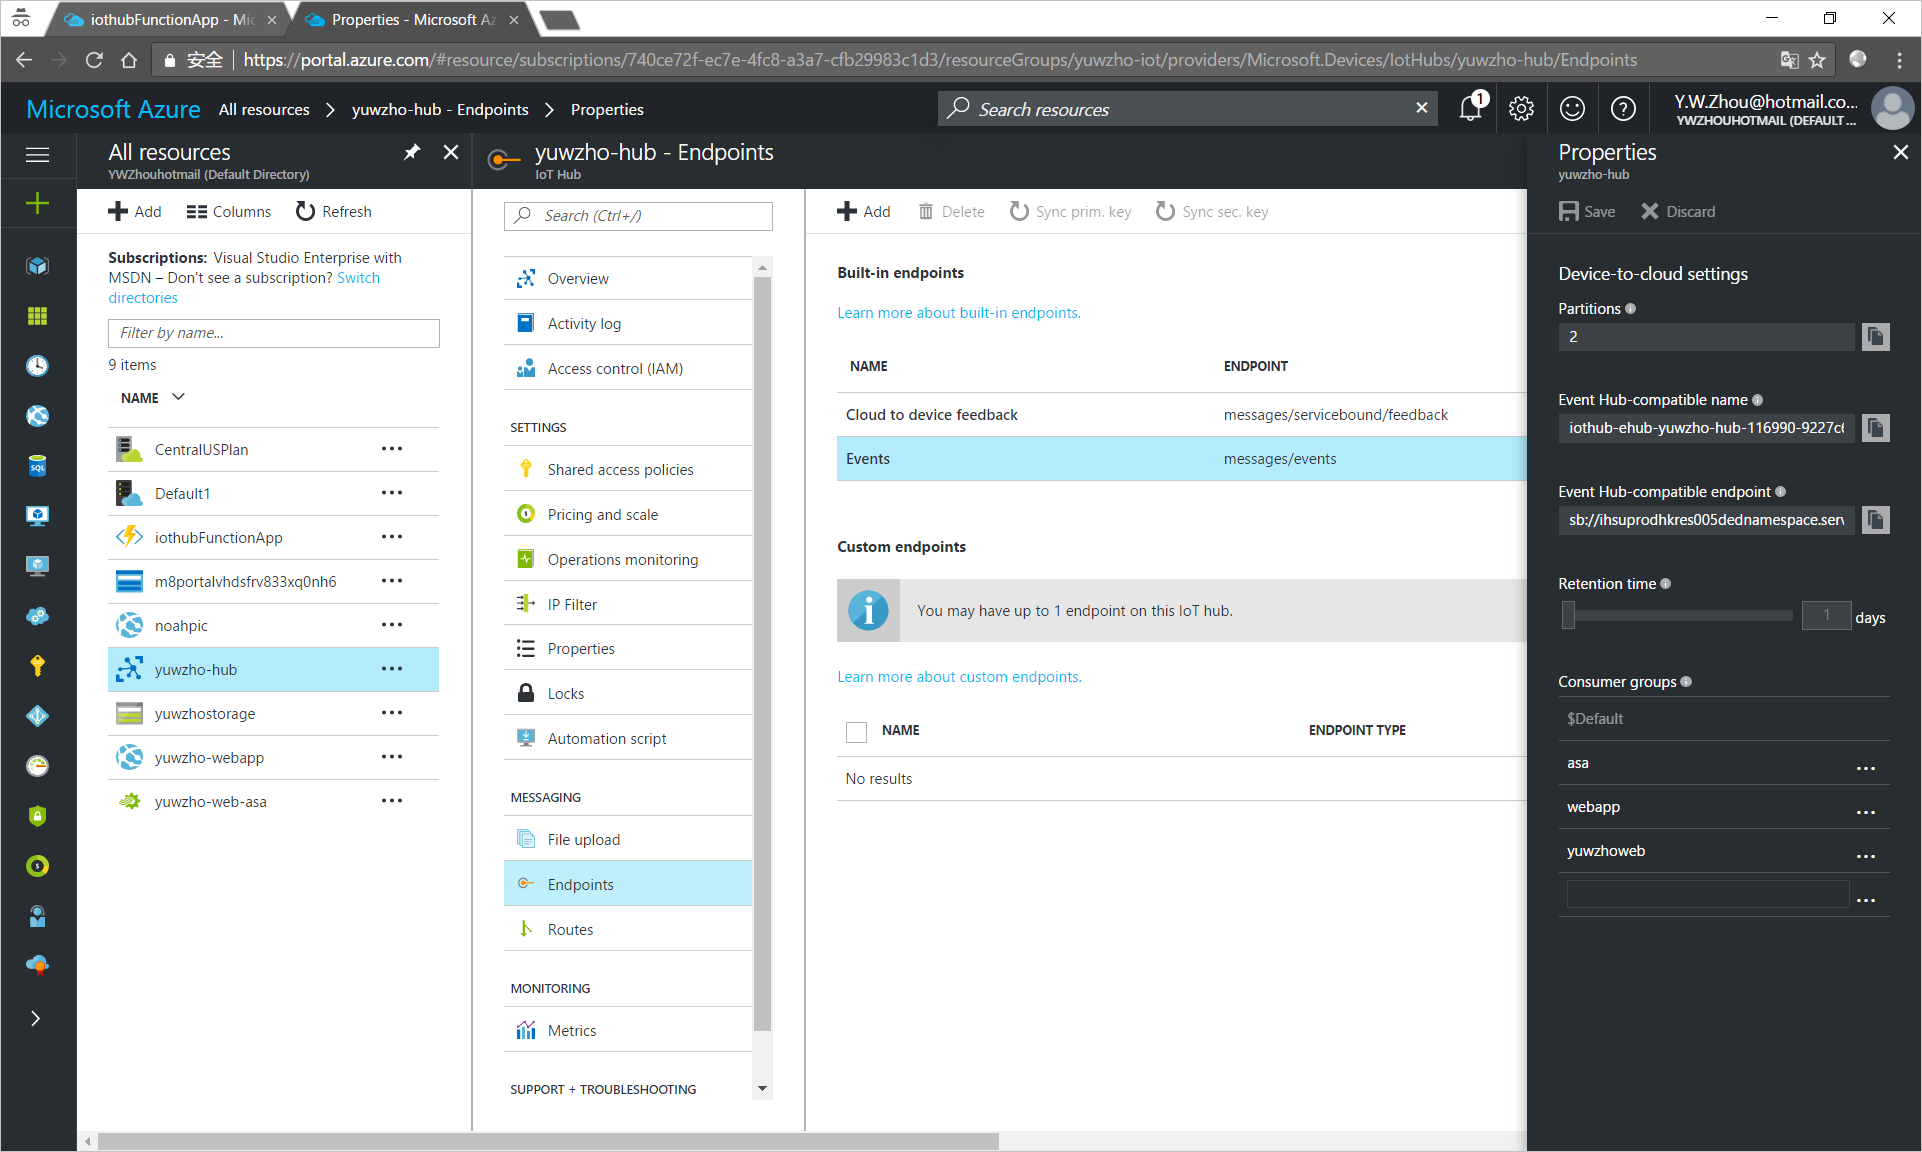 Get the connection string of your IoT hub endpoint in the Azure portal